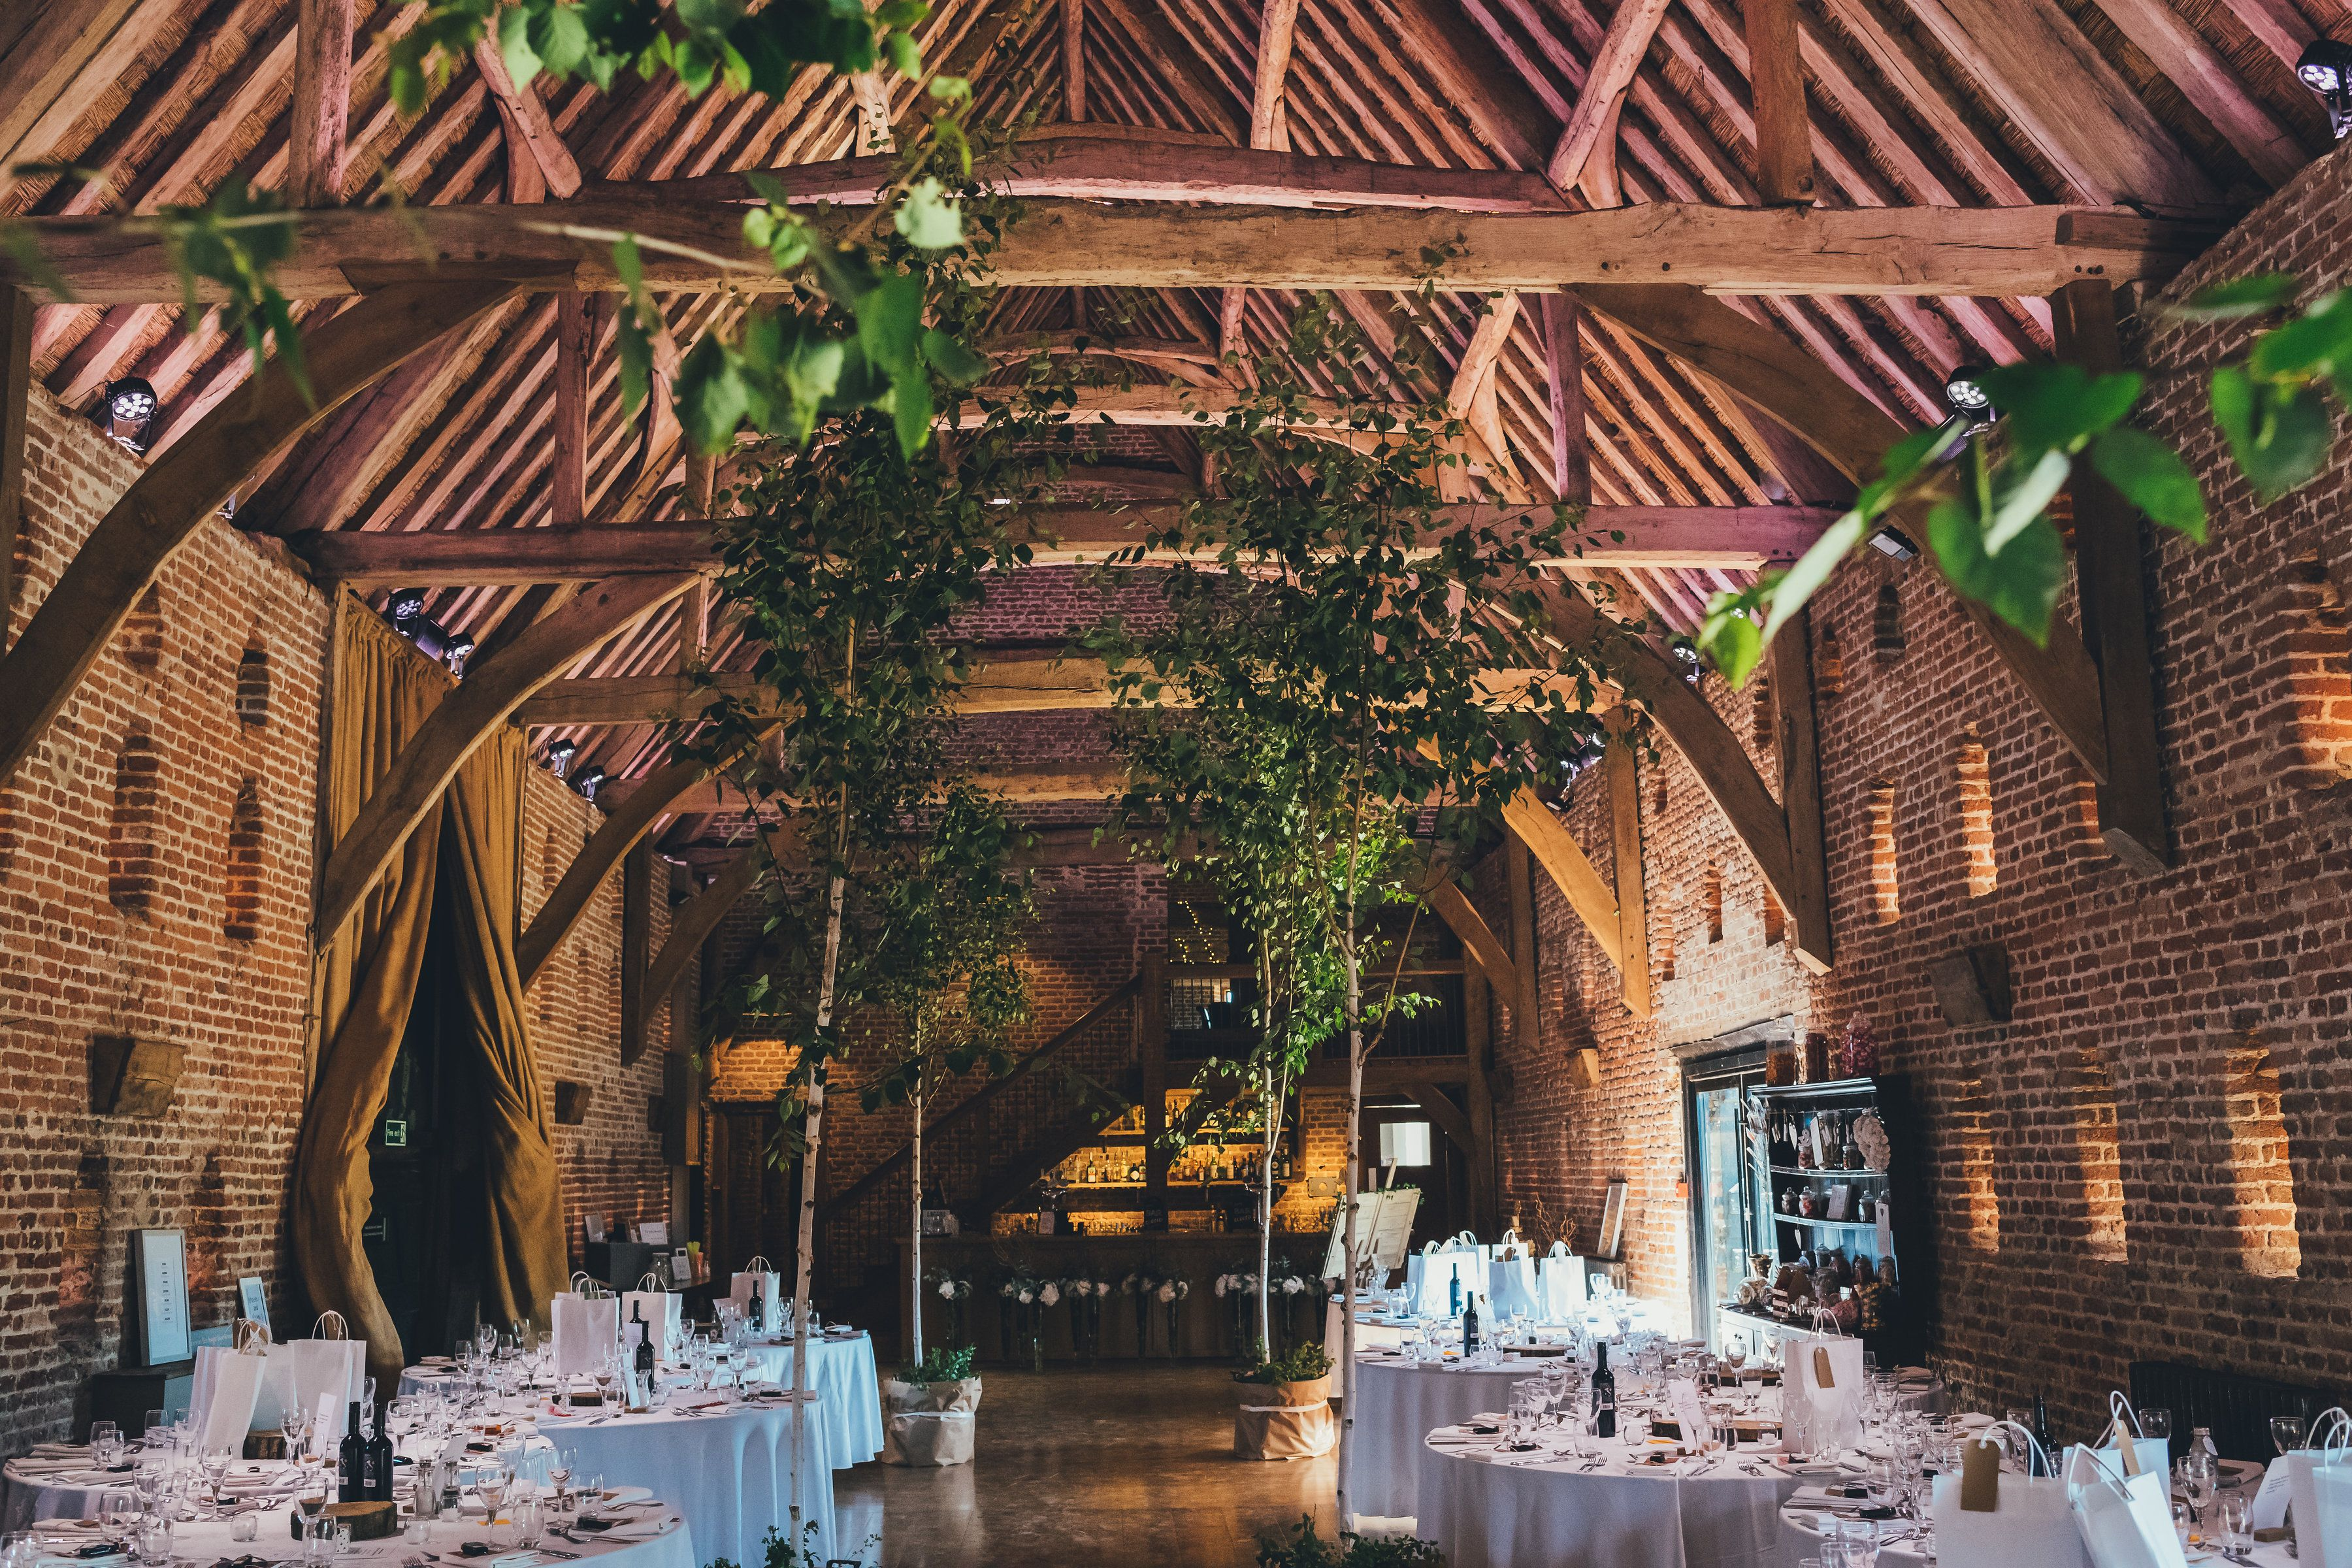 Hales Hall And The Great Barn Is The Perfect Venue For A Magical Wedding Or Private Party It S In The Heart Of The Norfolk Countryside Just 12 Miles Lavebryllup